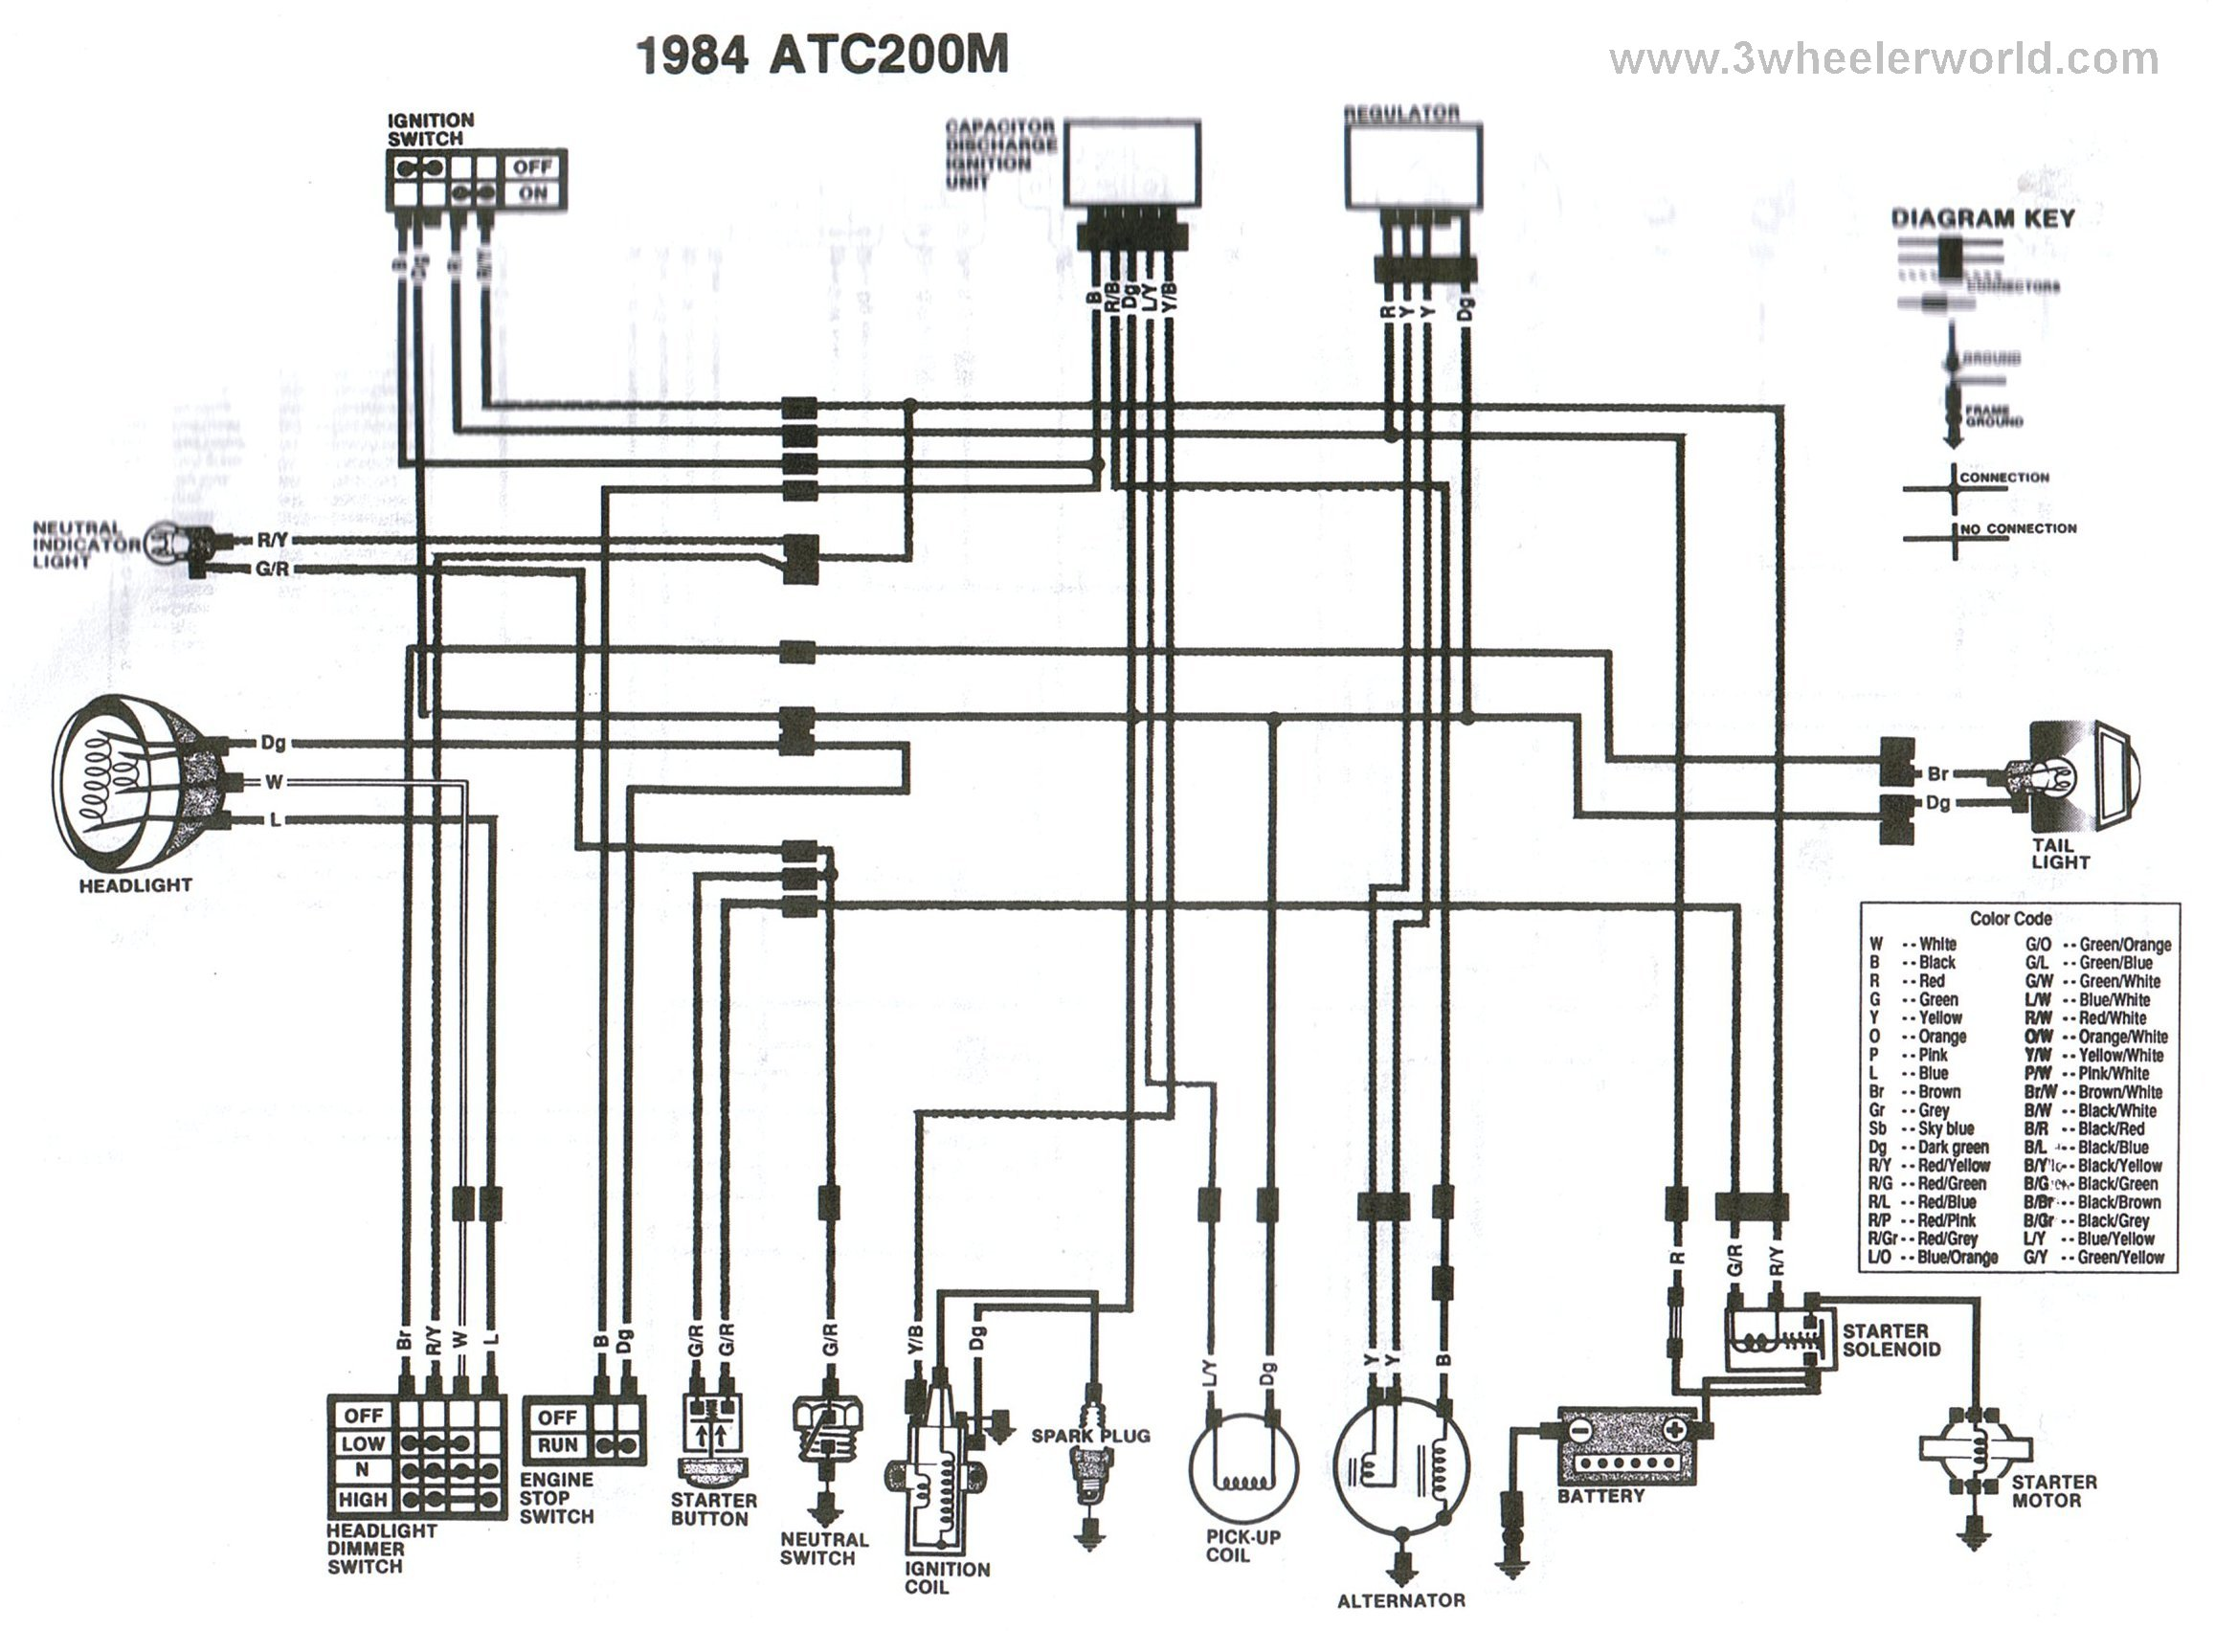 ATC200Mx84 3 wheeler world tech help honda wiring diagrams  at bakdesigns.co